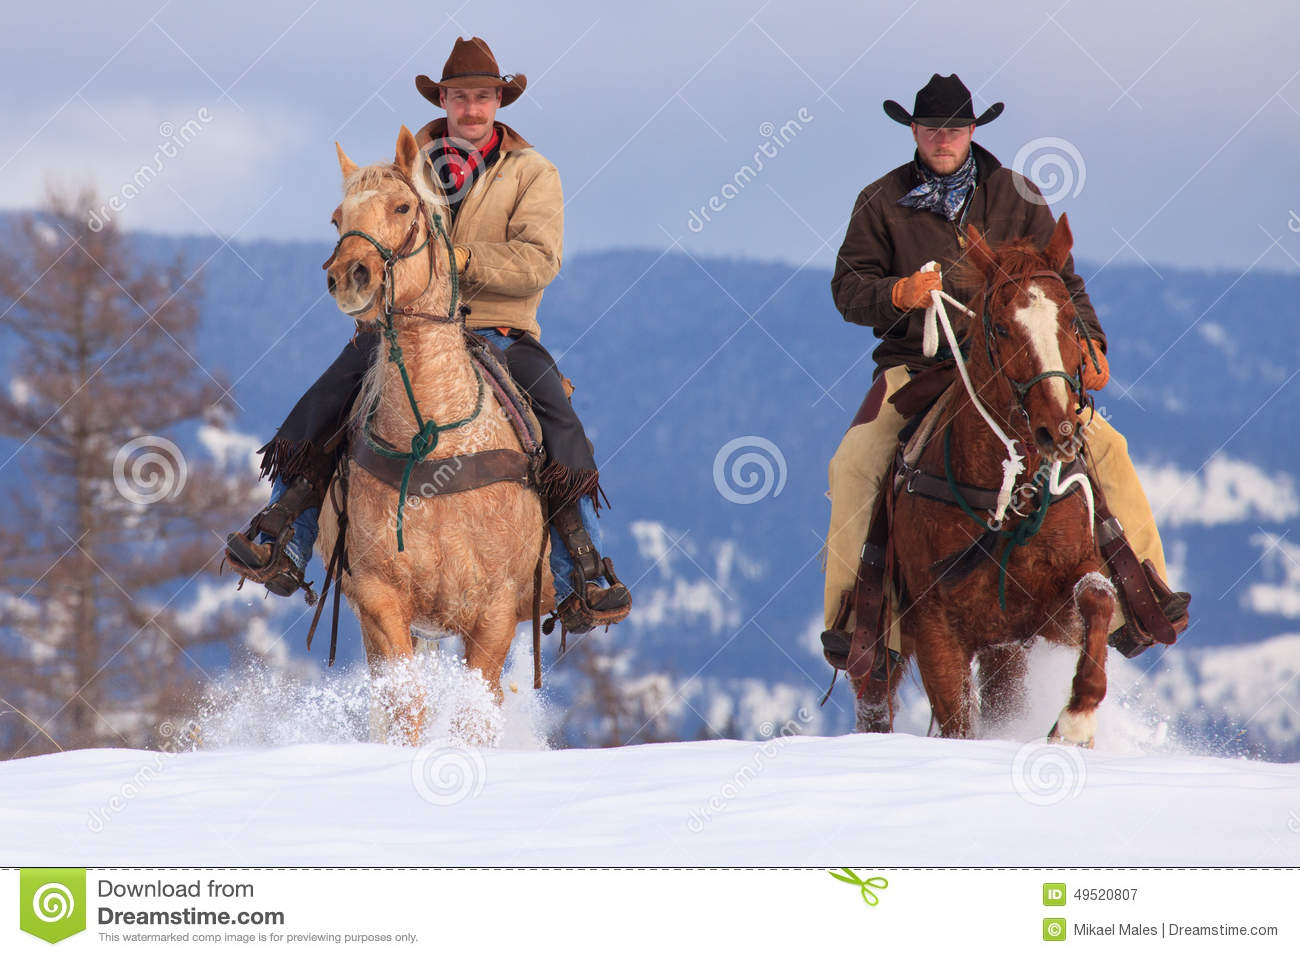 Two cowboys riding in deep snow